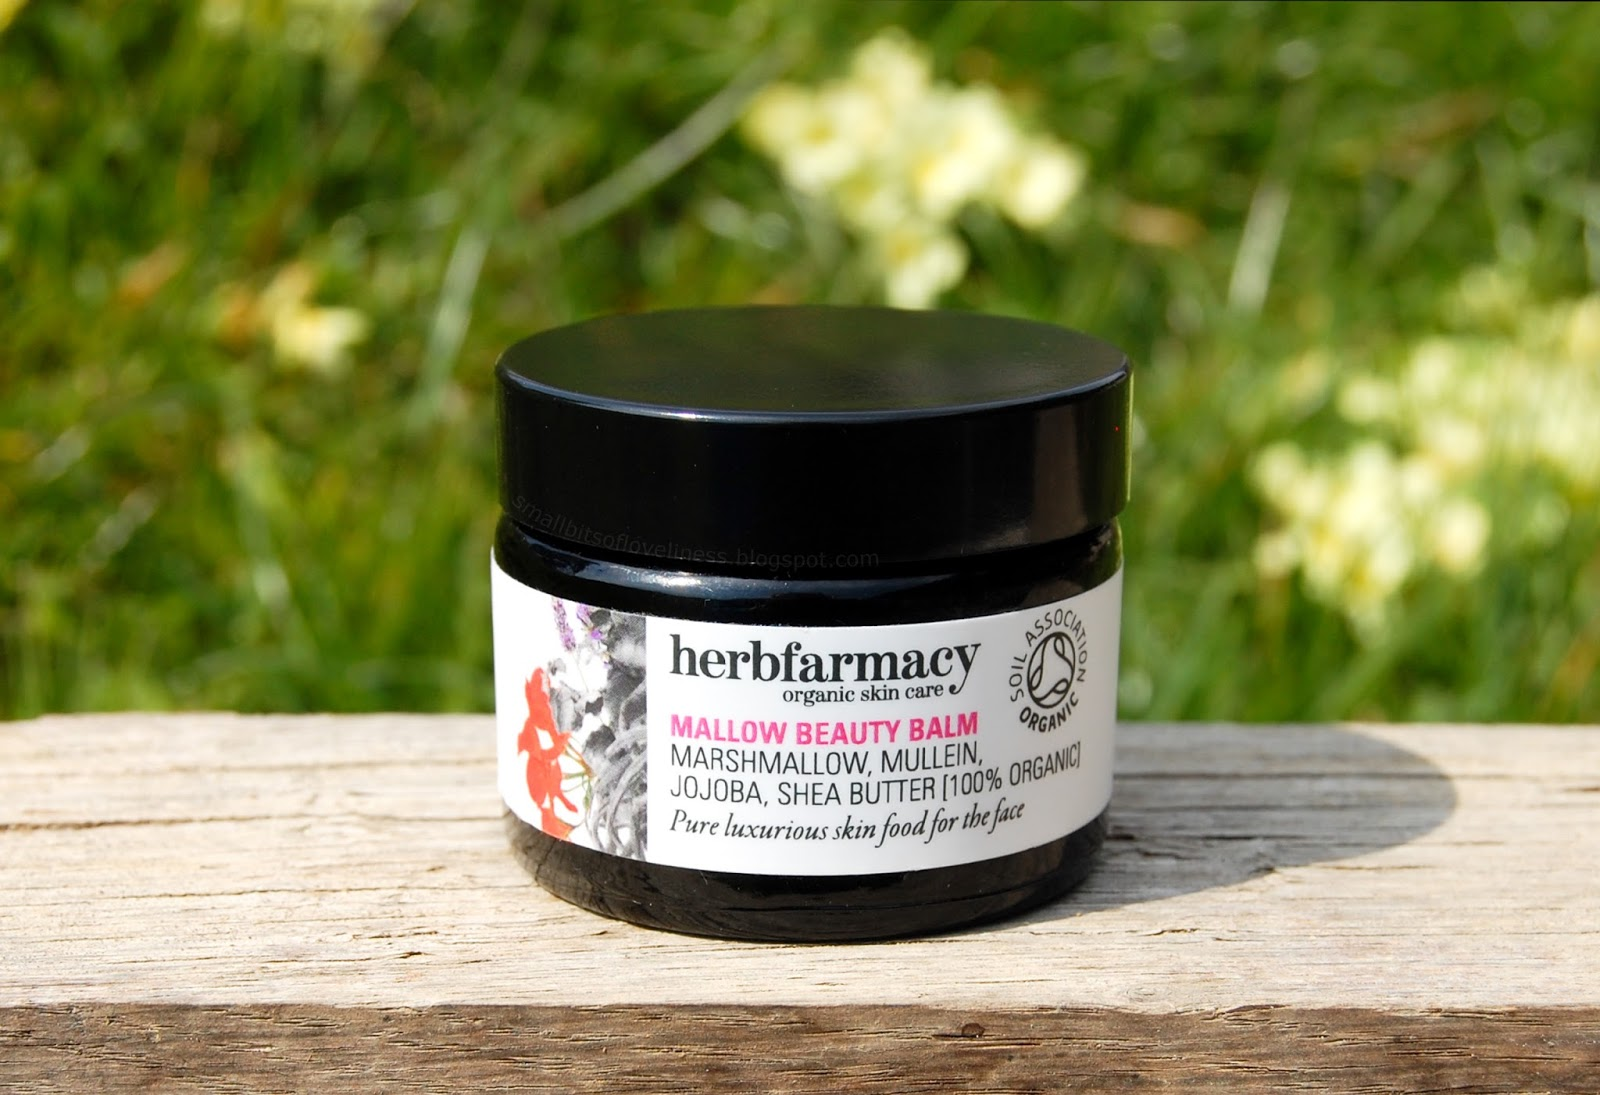 Herbfarmacy Mallow Beauty Balm, 100% Organic